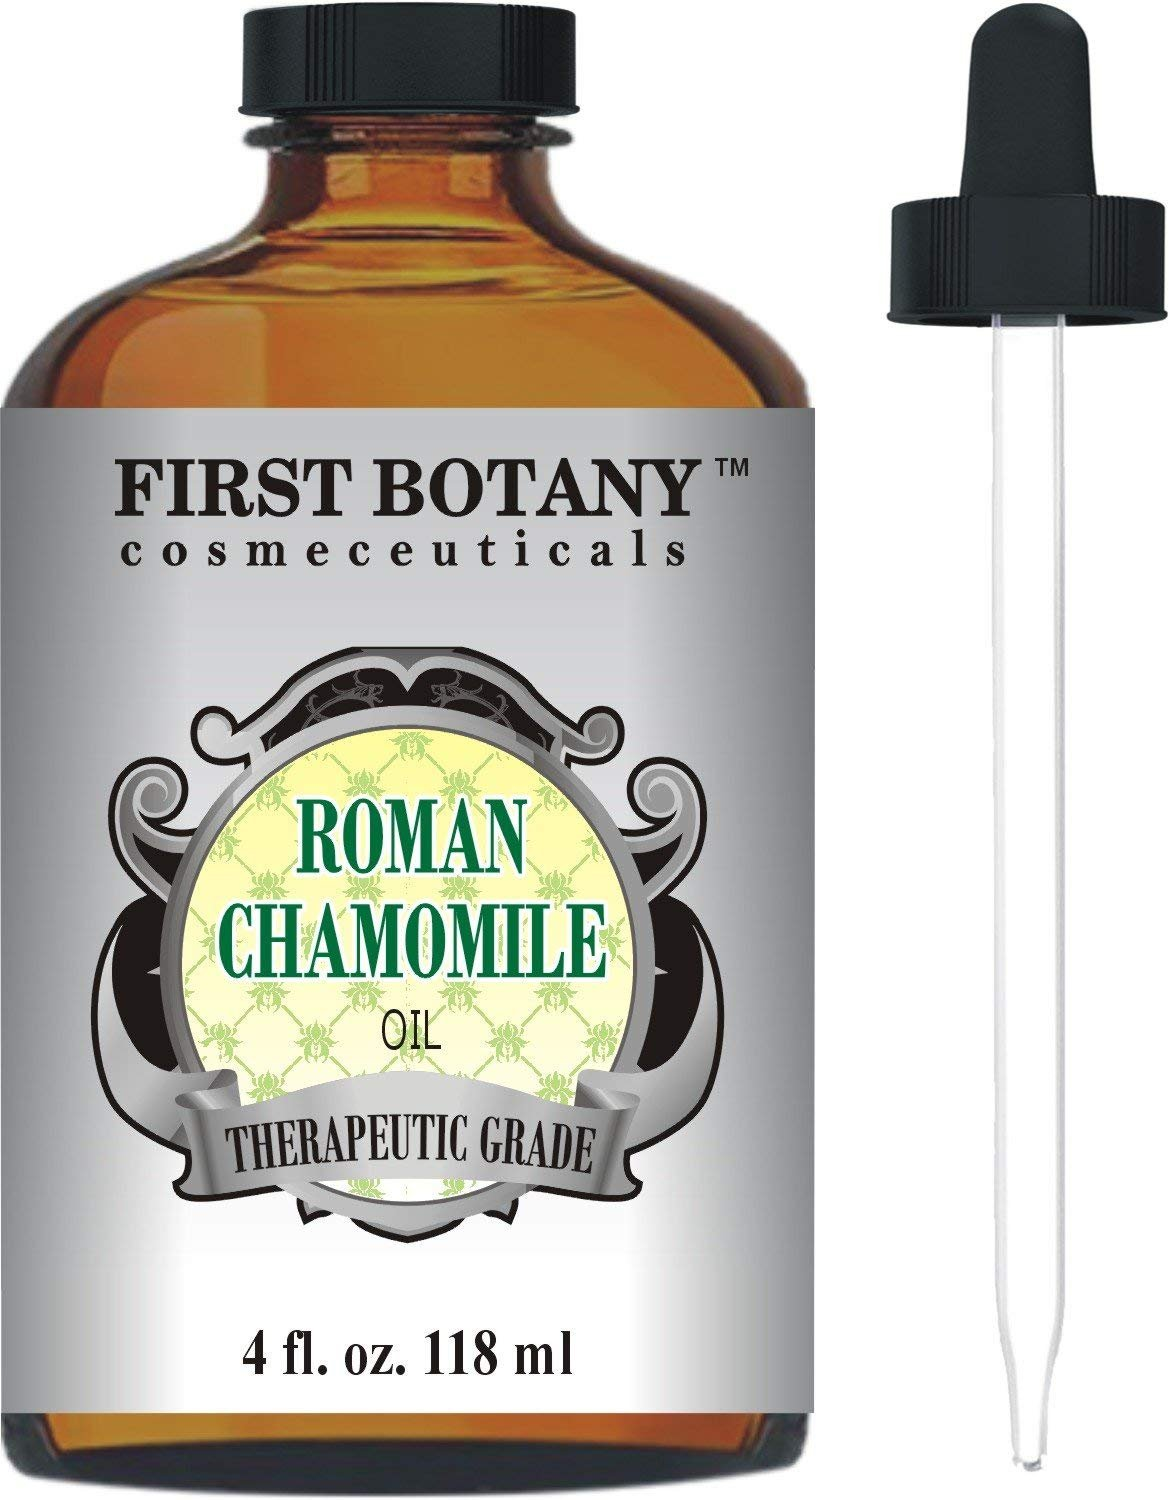 Roman Chamomile Essential Oil with a Glass Dropper - Large 4 fl. oz- Best Premium Quality Oil